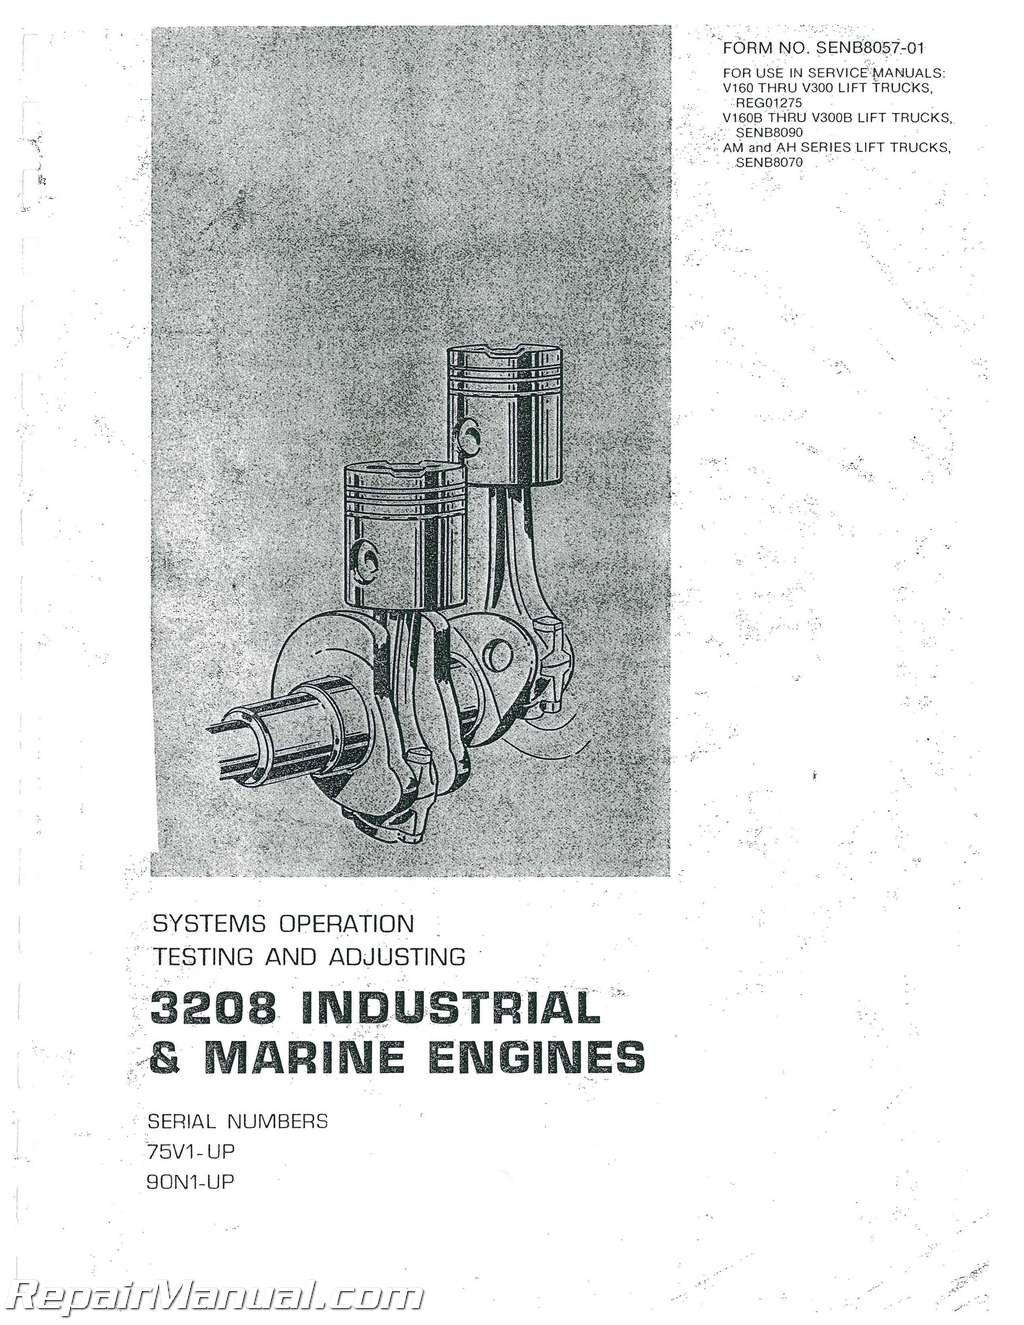 ct s eng 3208 caterpillar engine 3208 ag marine early service manual ct s eng 3208 caterpillar engine 3208 ag marine early service manual paperback 2004